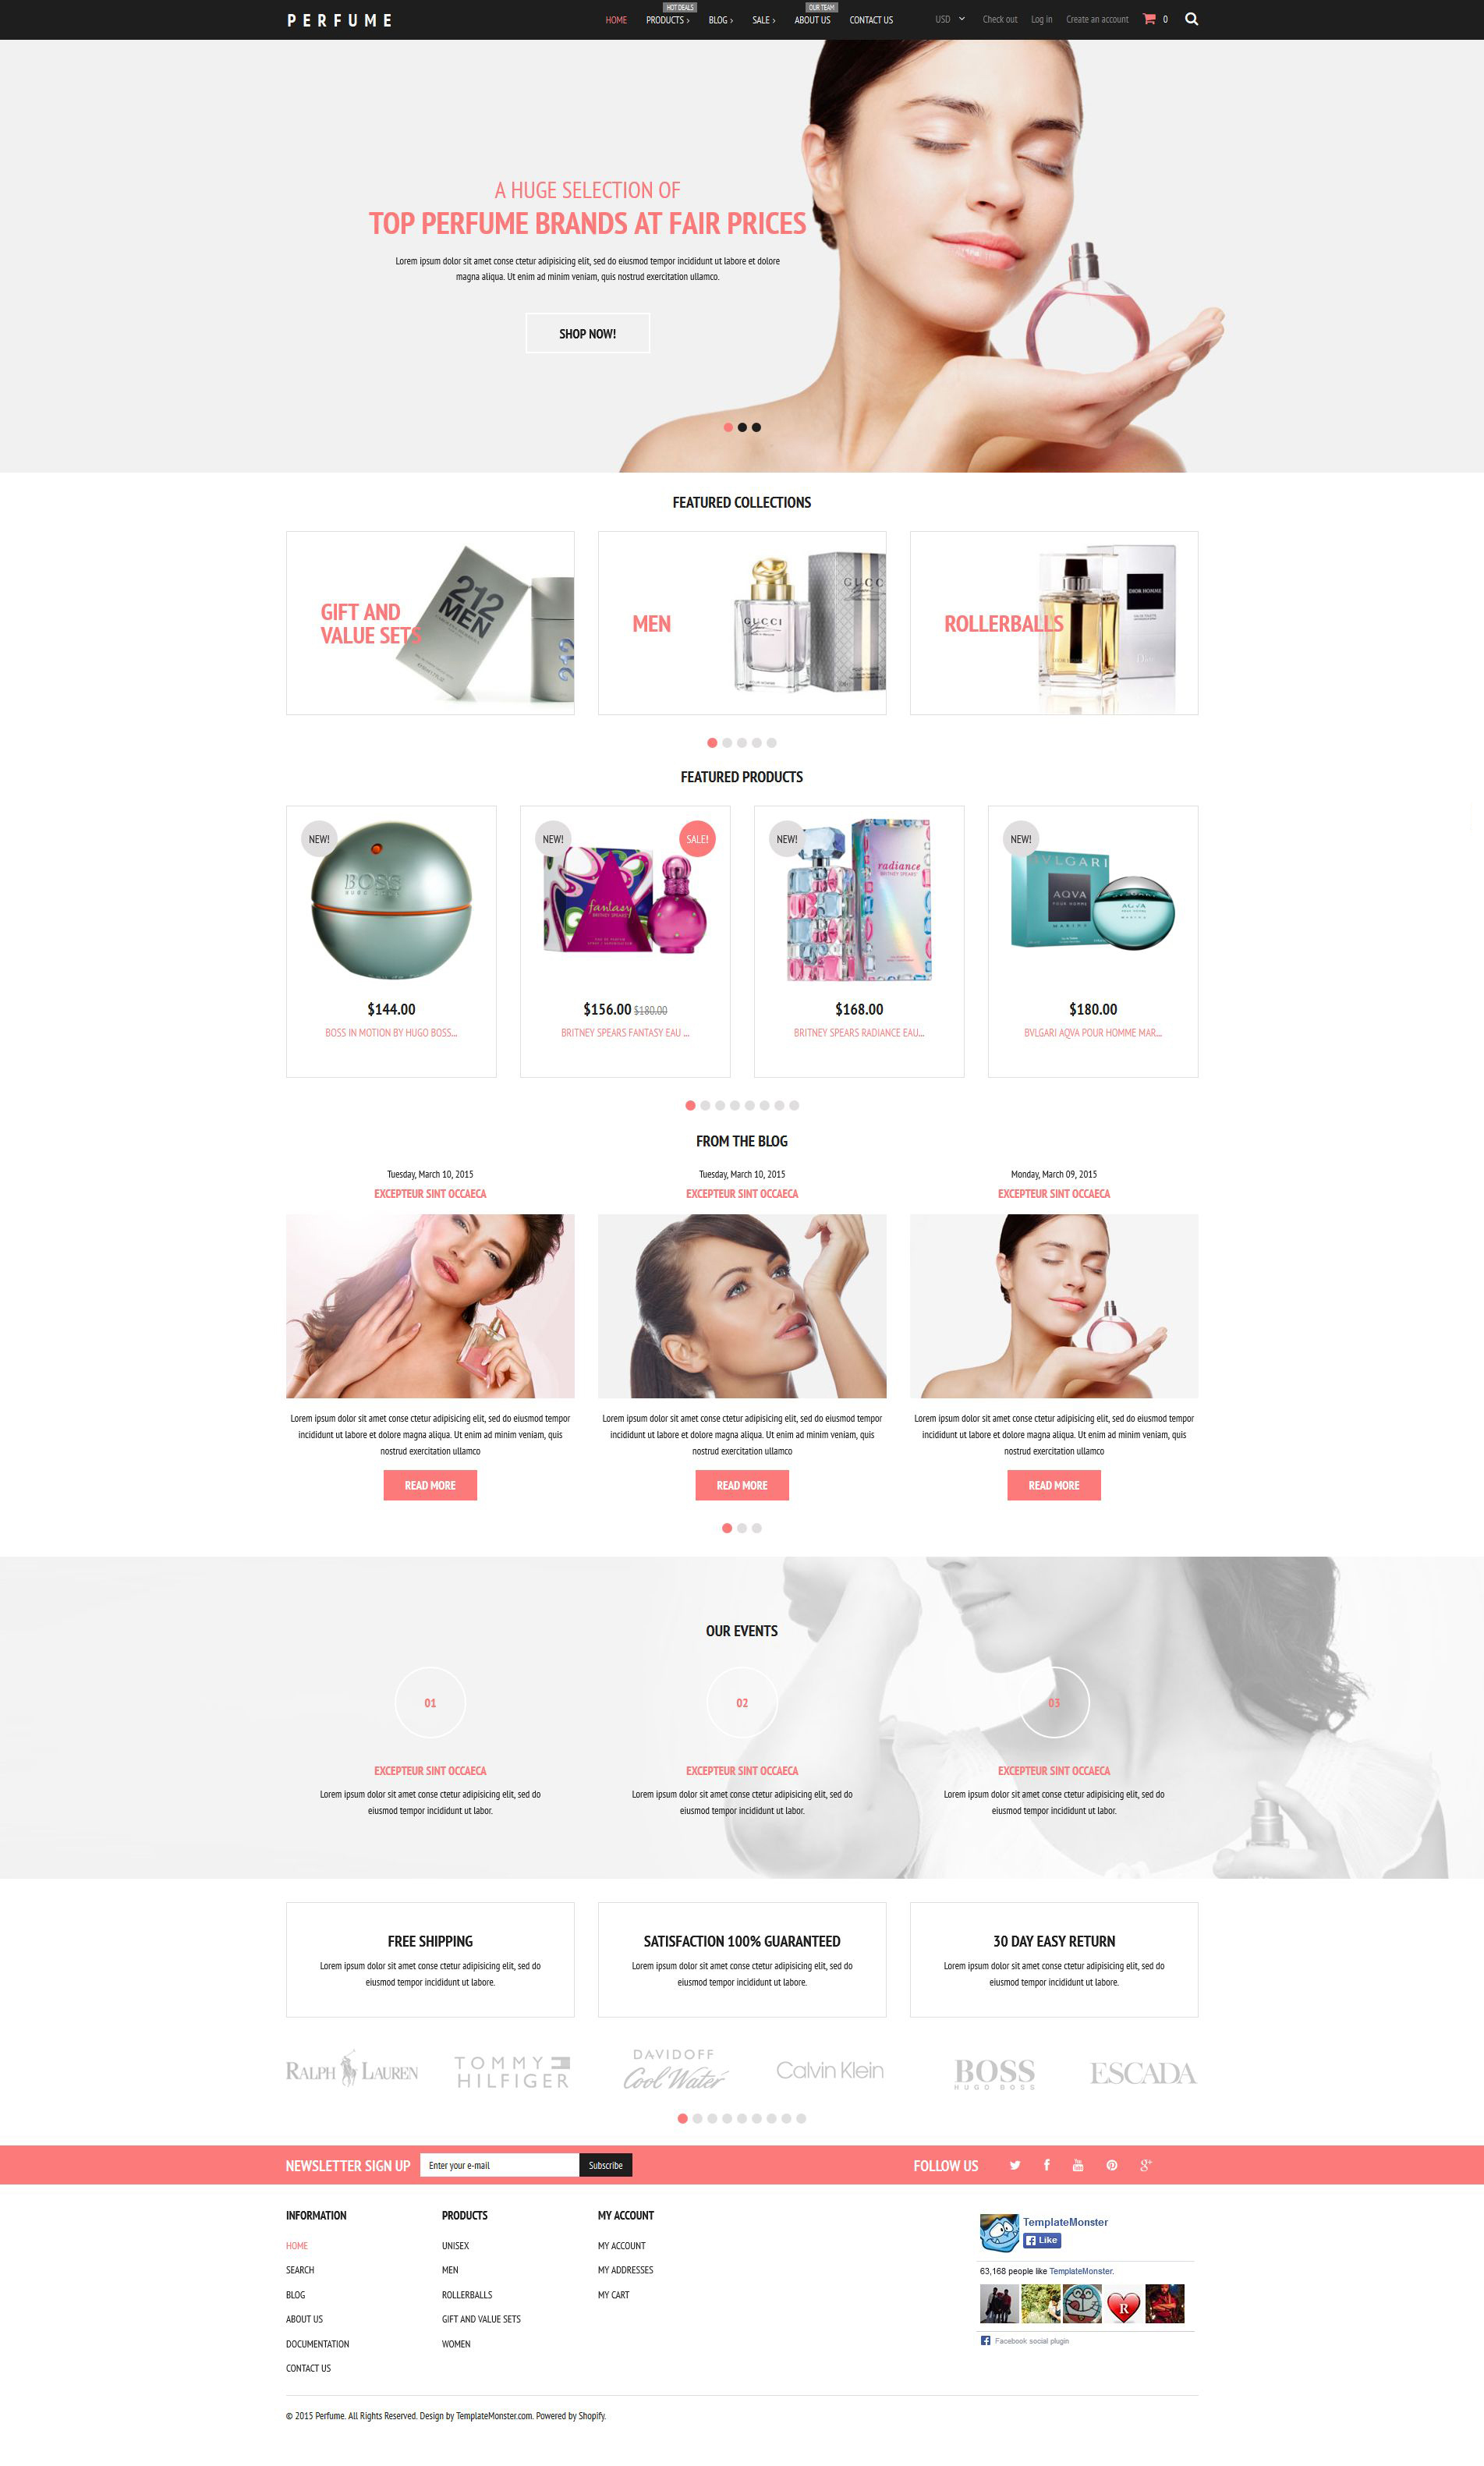 The Perfume Online Shop Shopify Design 53438, one of the best Shopify themes of its kind (beauty, most popular), also known as perfume online shop Shopify template, cosmetic Shopify template, beauty Shopify template, fashion Shopify template, health care Shopify template, women solution Shopify template, service Shopify template, catalogue Shopify template, product Shopify template, gift Shopify template, skincare Shopify template, hair care Shopify template, style Shopify template, cream Shopify template, natural Shopify template, rejuvenation Shopify template, damping Shopify template, lifting Shopify template, peeling Shopify template, specials Shopify template, lipstick Shopify template, mascara Shopify template, nail Shopify template, polish Shopify template, shampoo Shopify template, body Shopify template, milk Shopify template, lotion Shopify template, hand Shopify template, client and related with perfume online shop, cosmetic, beauty, fashion, health care, women solution, service, catalogue, product, gift, skincare, hair care, style, cream, natural, rejuvenation, damping, lifting, peeling, specials, lipstick, mascara, nail, polish, shampoo, body, milk, lotion, hand, client, etc.